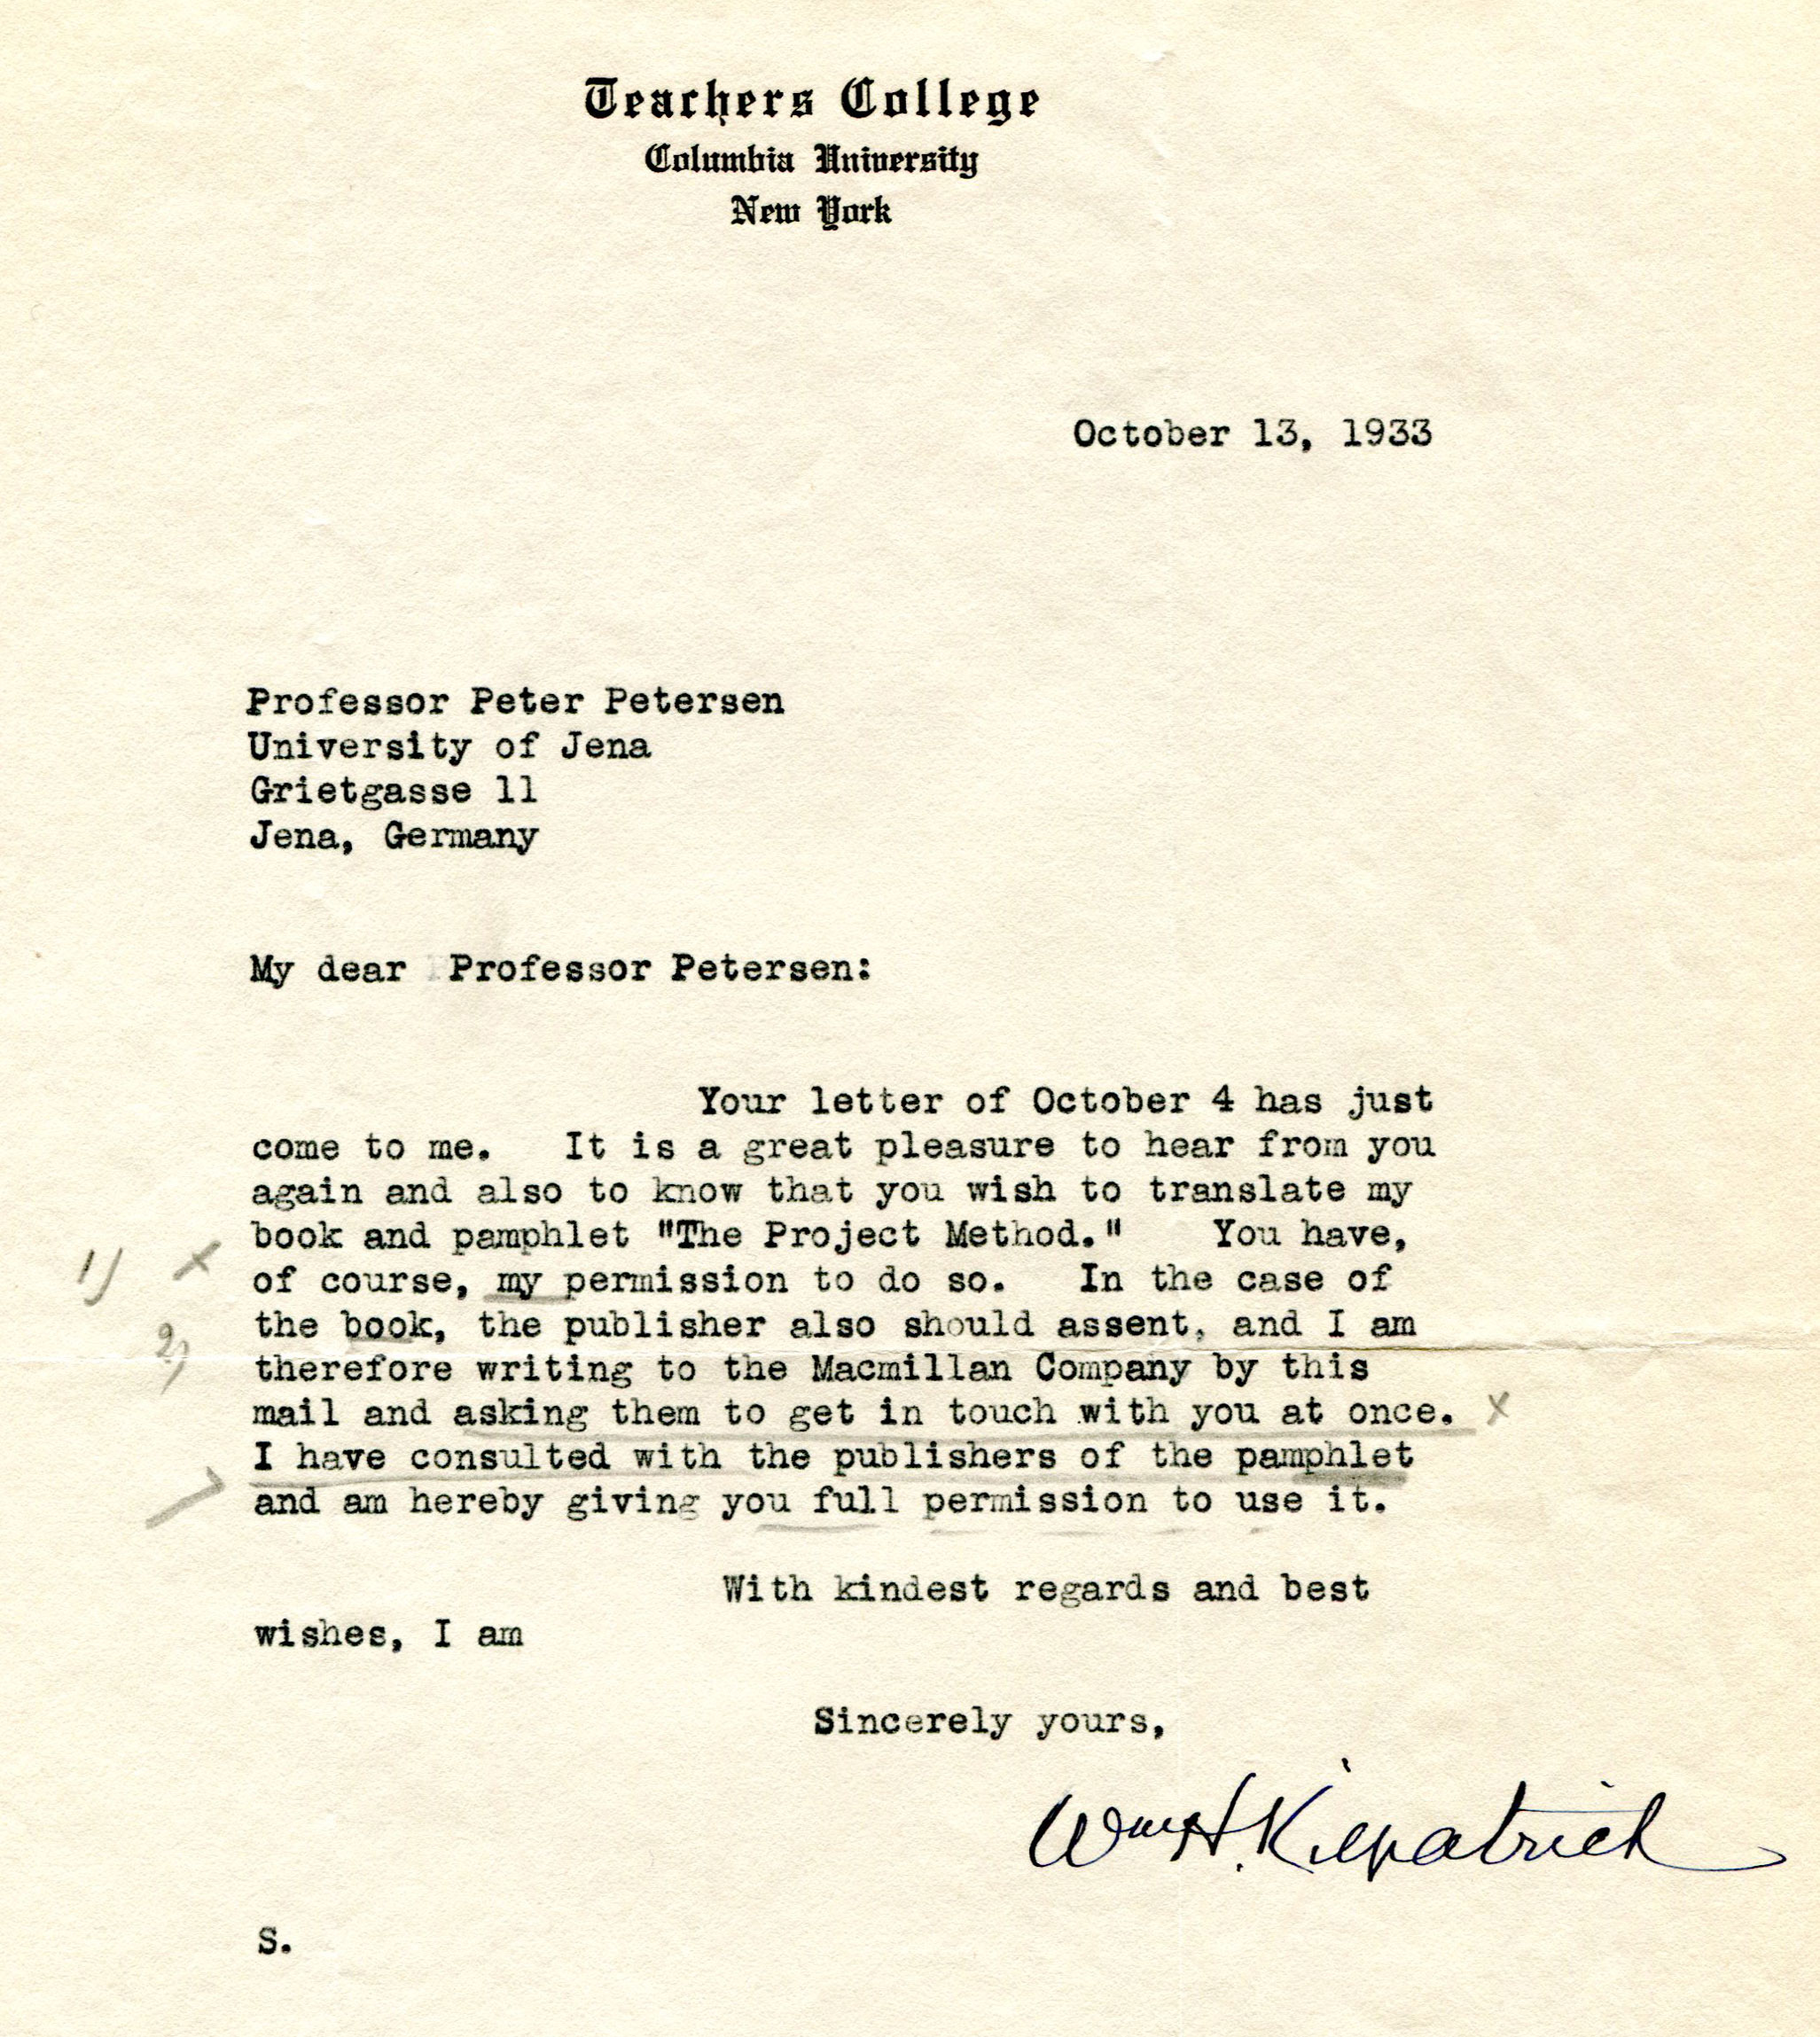 Figure 9: Letter from W.H. Kilpatrick to P. Petersen, dated 10-13-1933 (Source: PPAV)